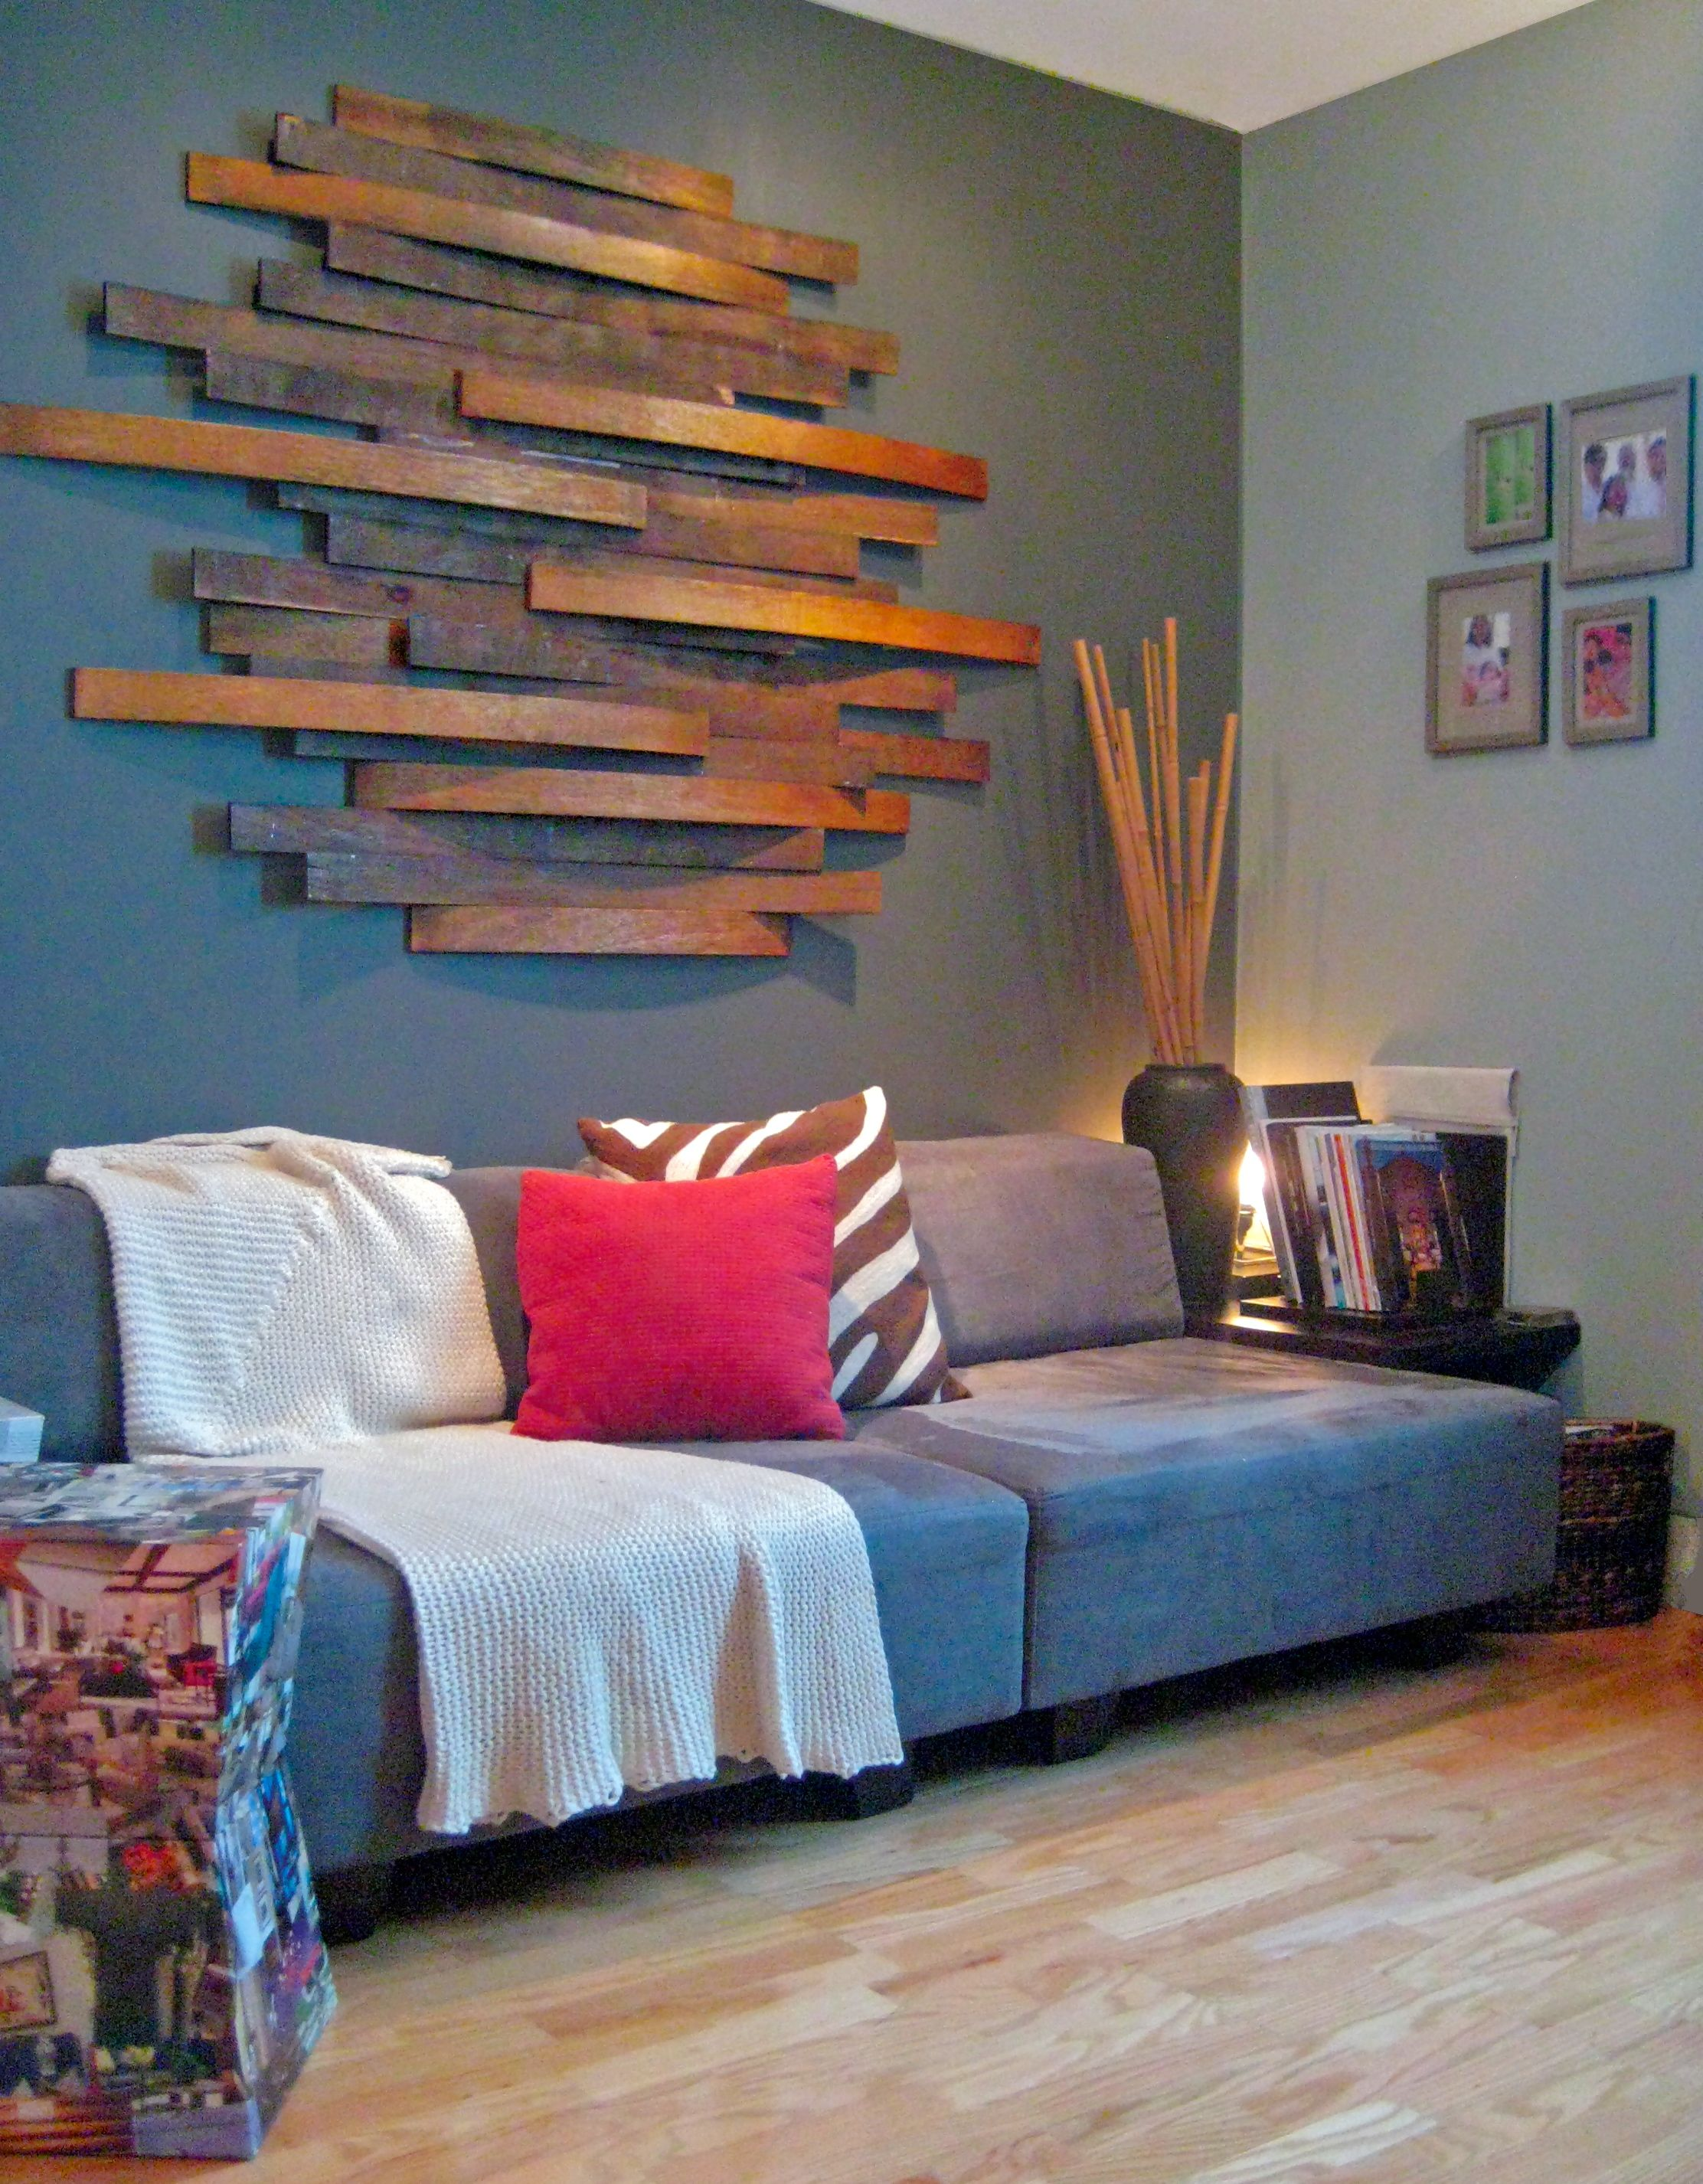 Bed Wood Slats Staining Wall Mounting Them Randomly This Just Converted Boredom To Creative Art Ikea Bed Slats Bed Slats Wall Decor Living Room